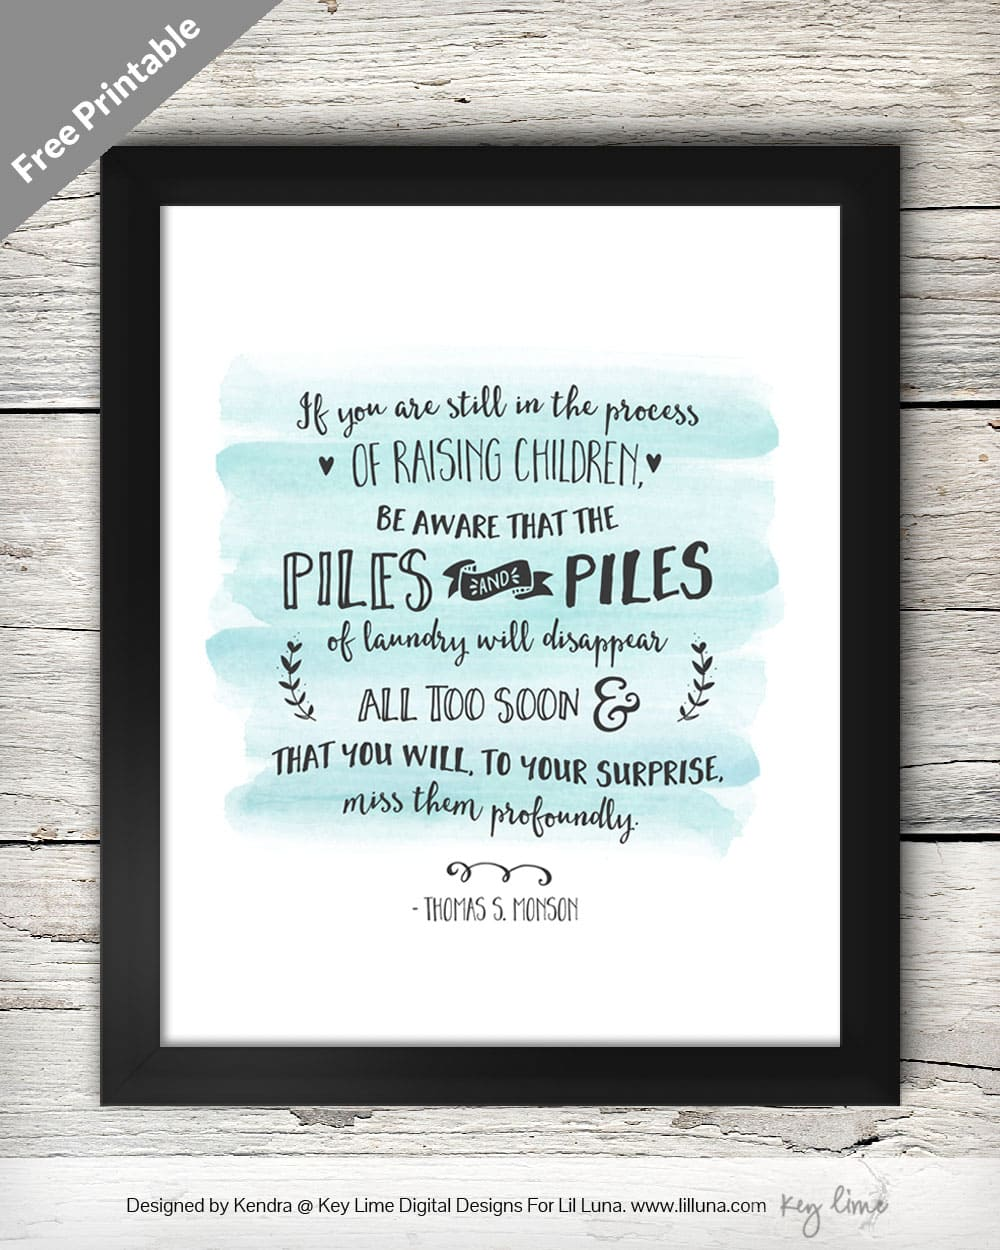 Finding Joy in the Journey Print on { lilluna.com } Love this quote!! Use as decor or give as a gift!